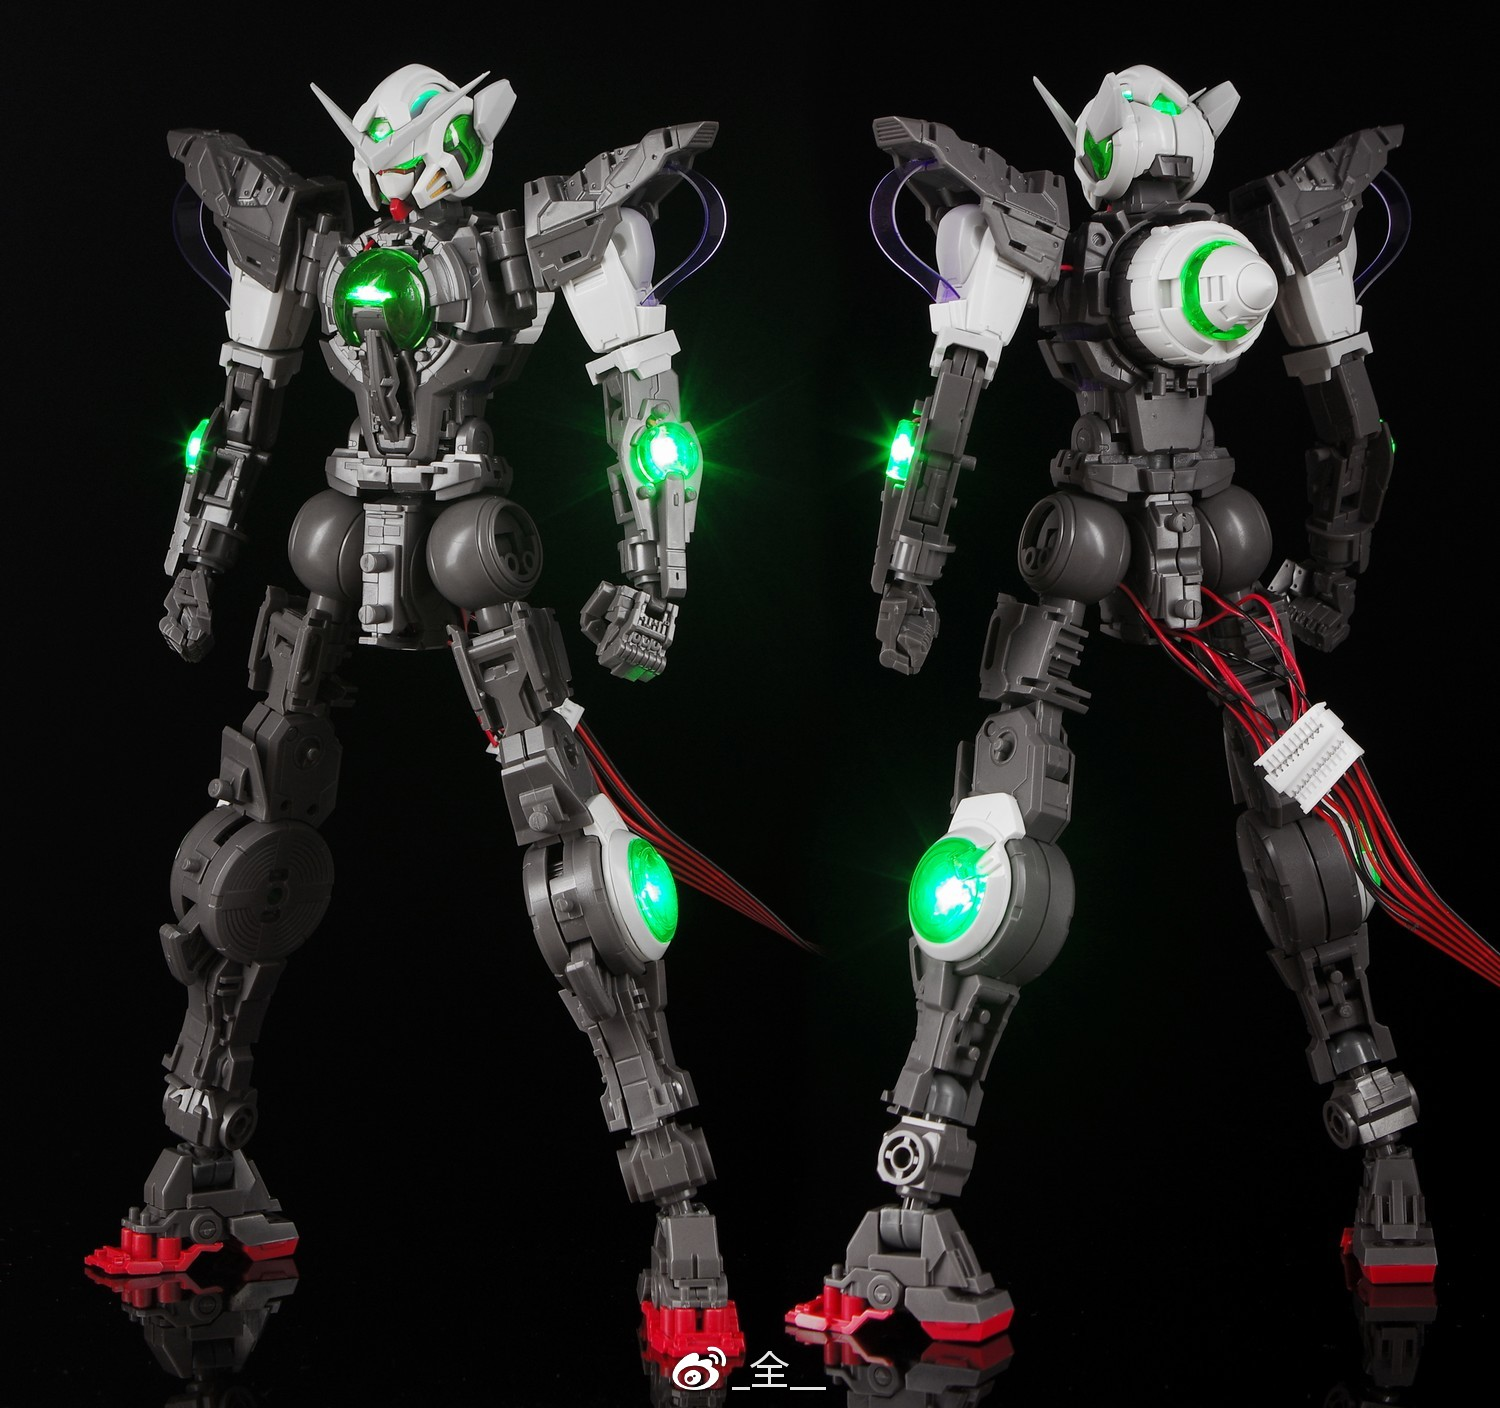 S269_mg_exia_led_hobby_star_inask_030.jpg